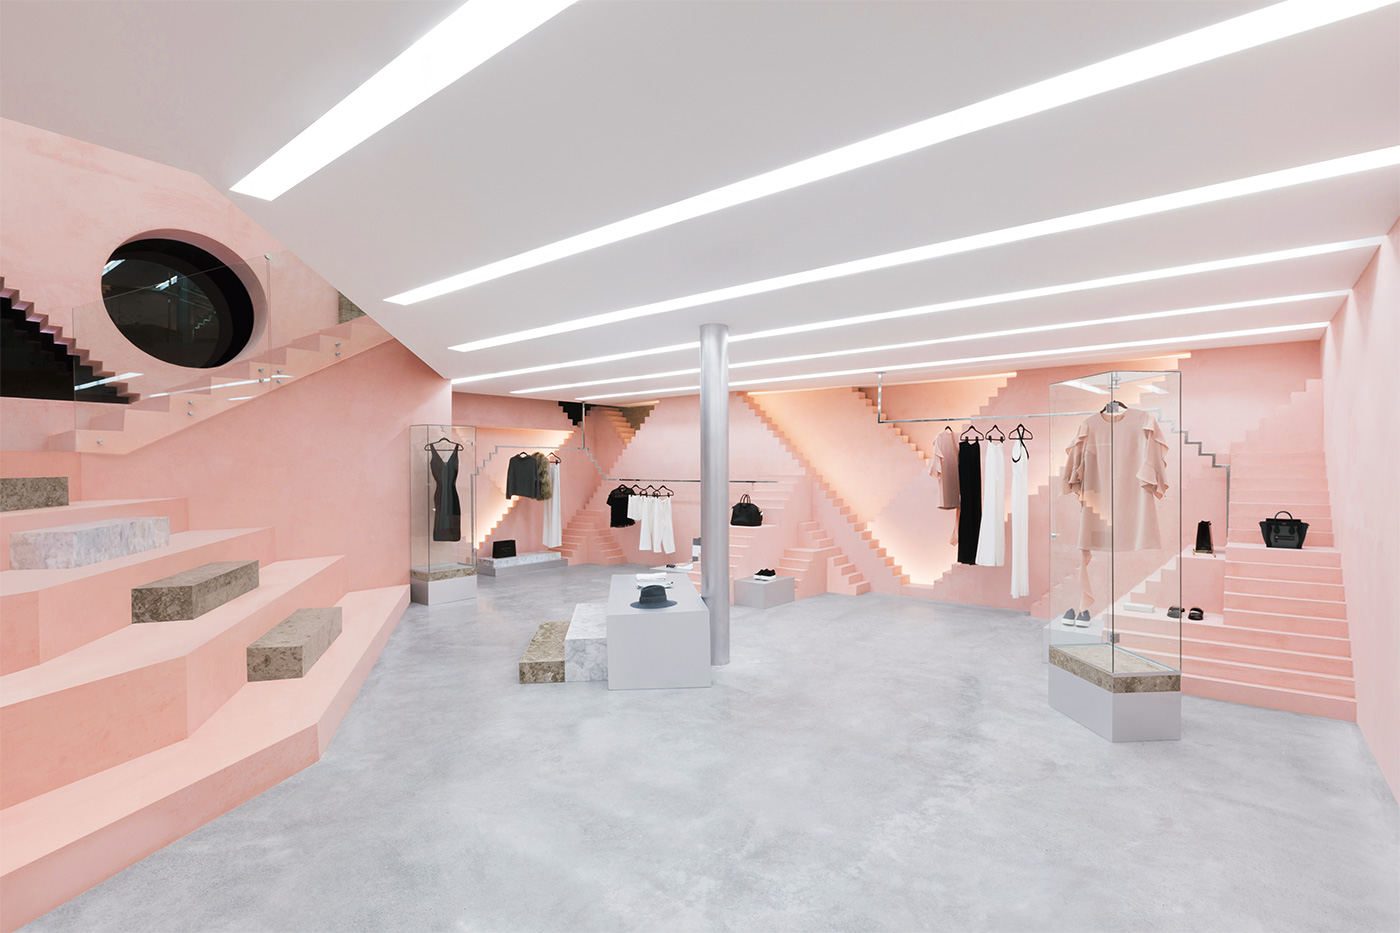 Geometric shapes steps details inside 39 novelty 39 san pedro store by anagrama for Fashion retail interior design